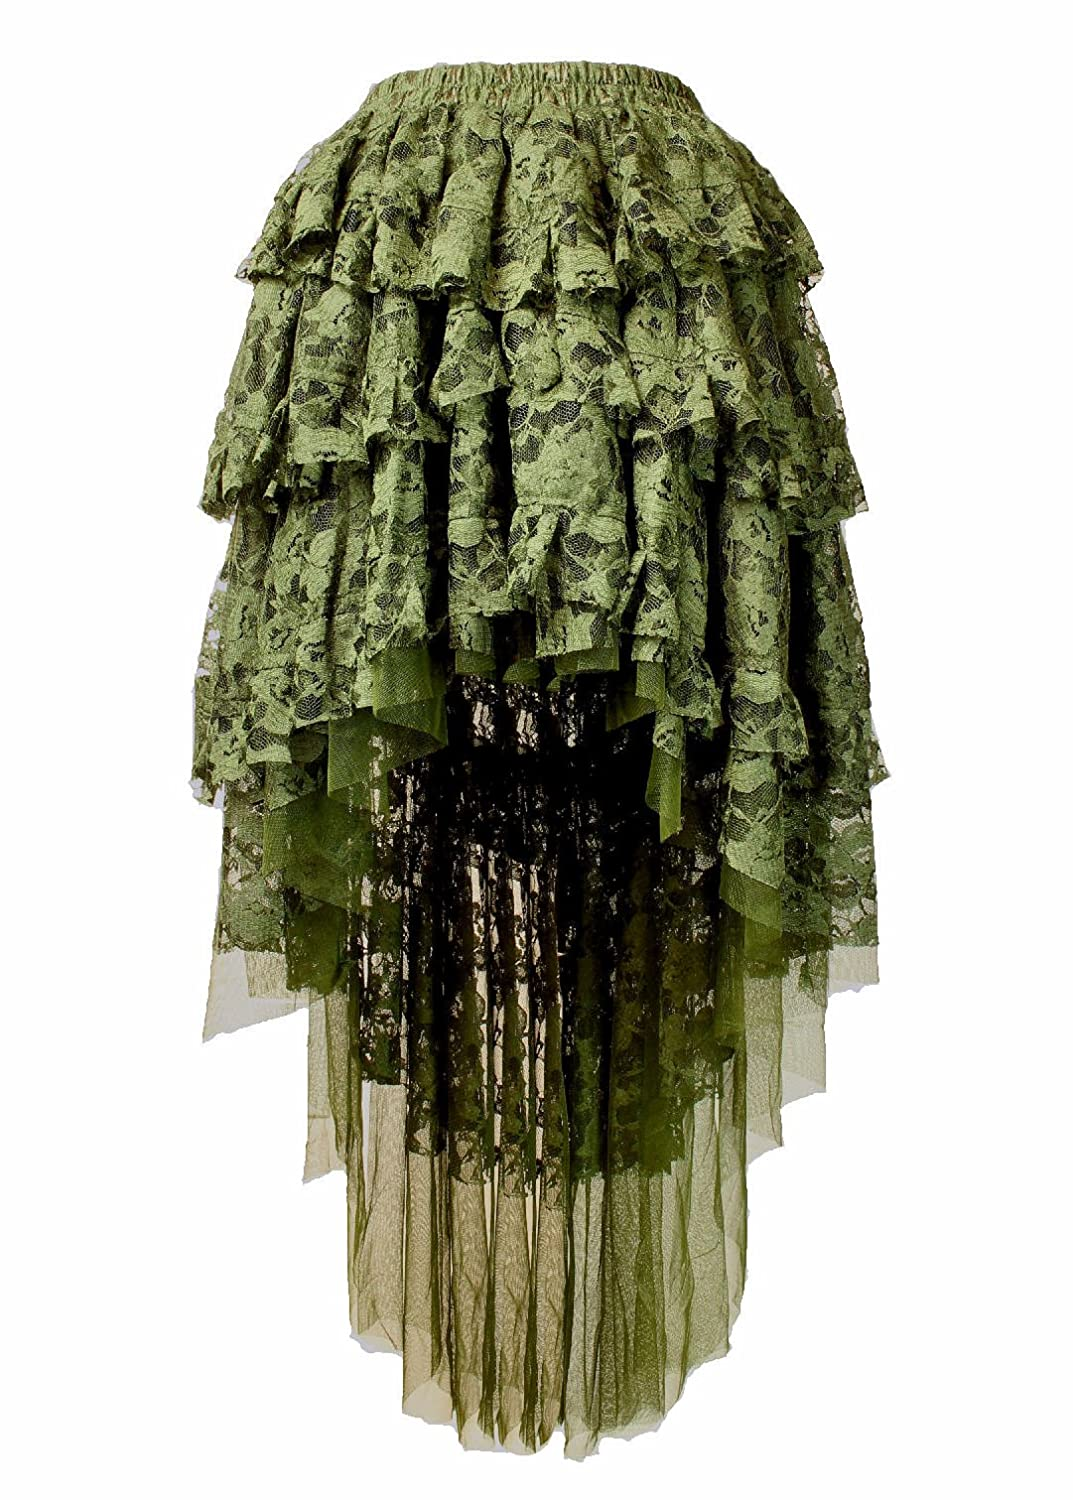 Womens Pirate Skirts Gypsy Deluxe Theatrical Quality Petal Skirt Olive Ophelie Fantasy Ruffle Lace